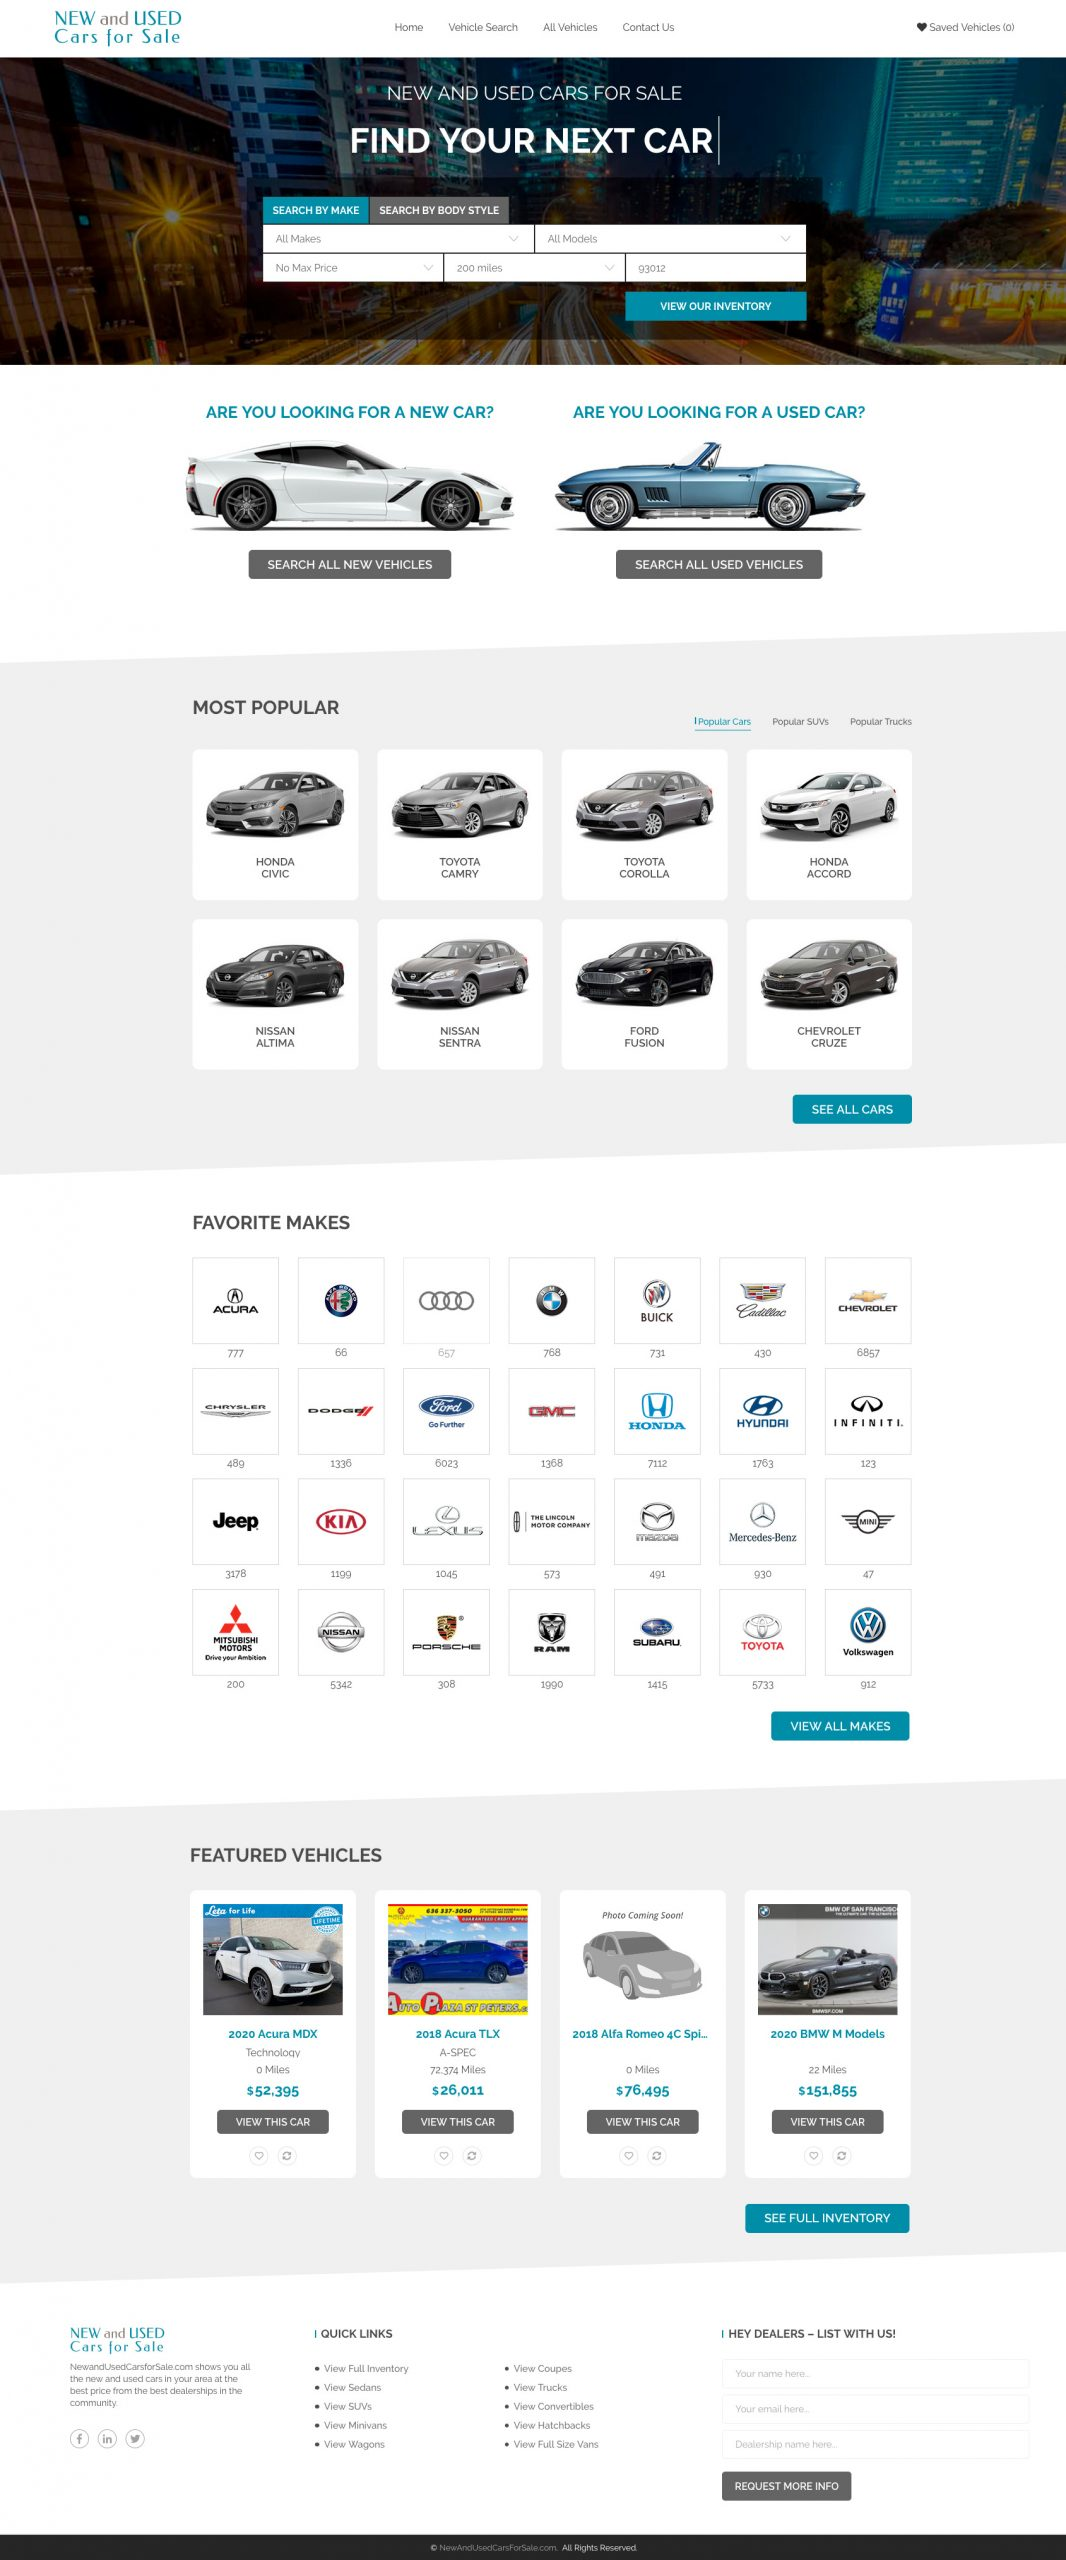 Home page for New and Used Cars for Sale